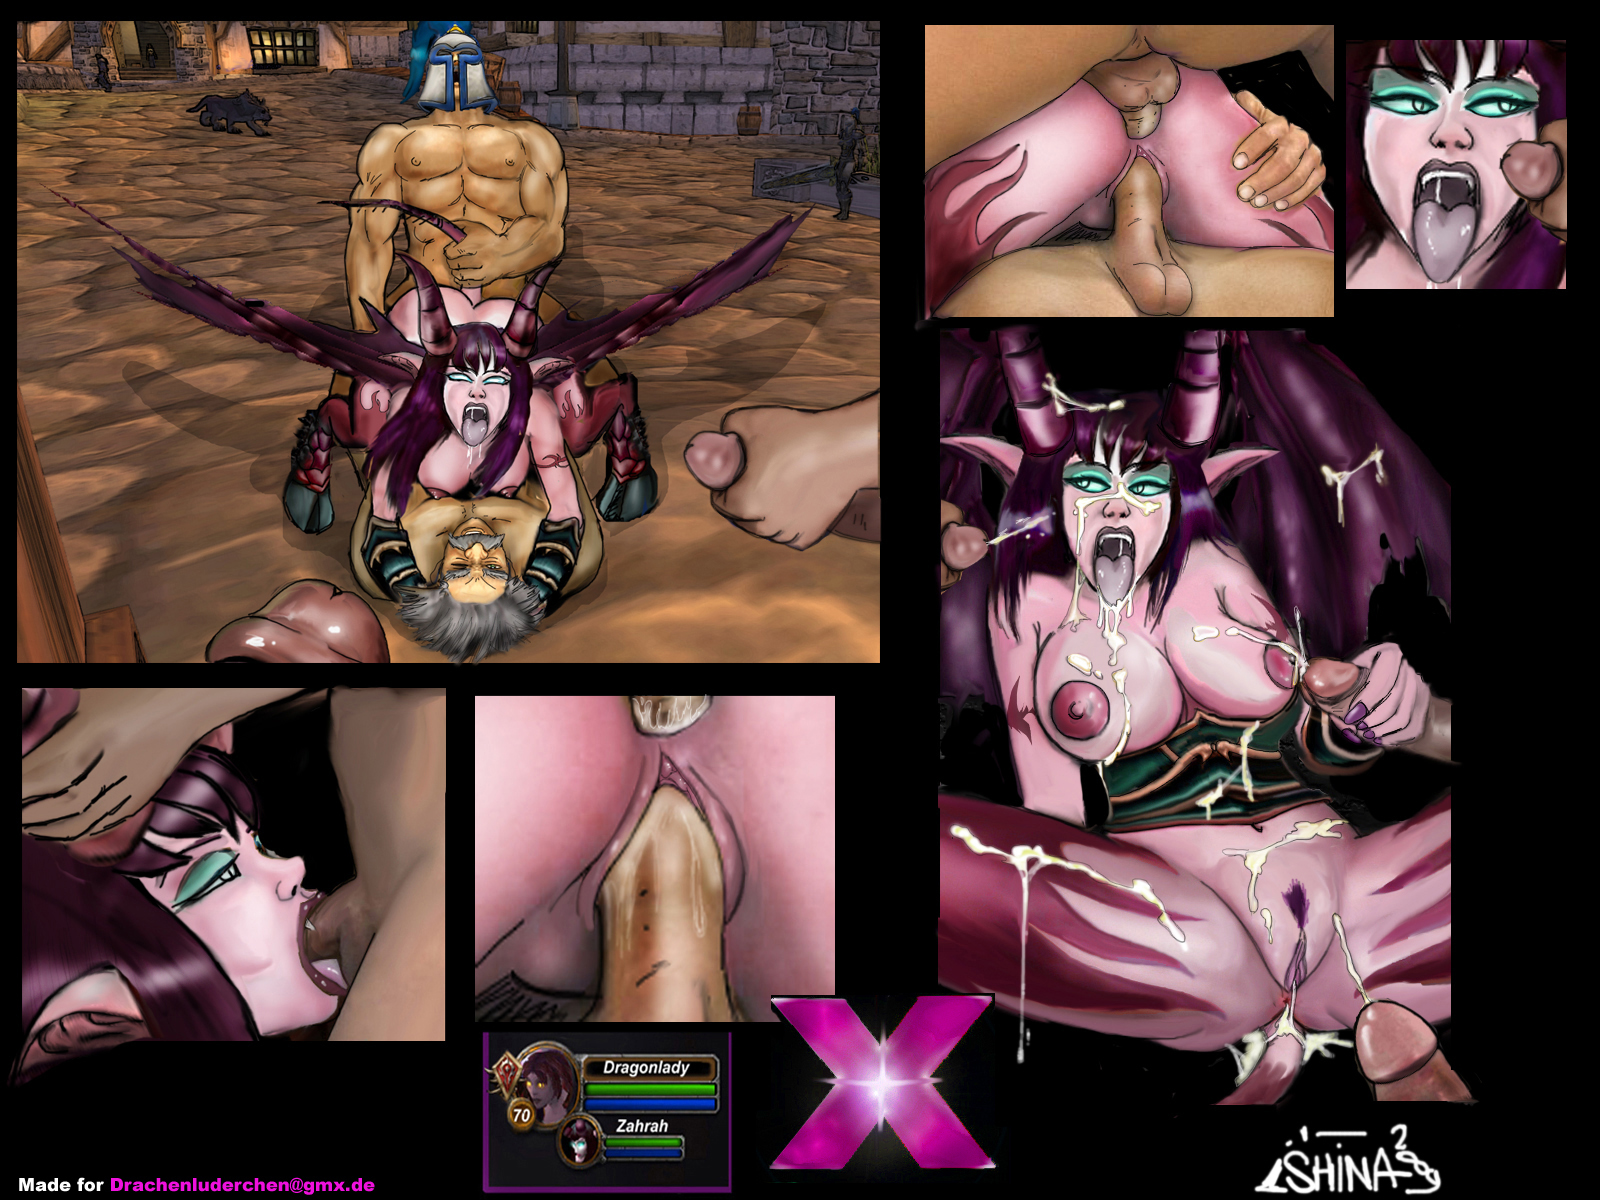 Warcraft sexual pics hentai pics